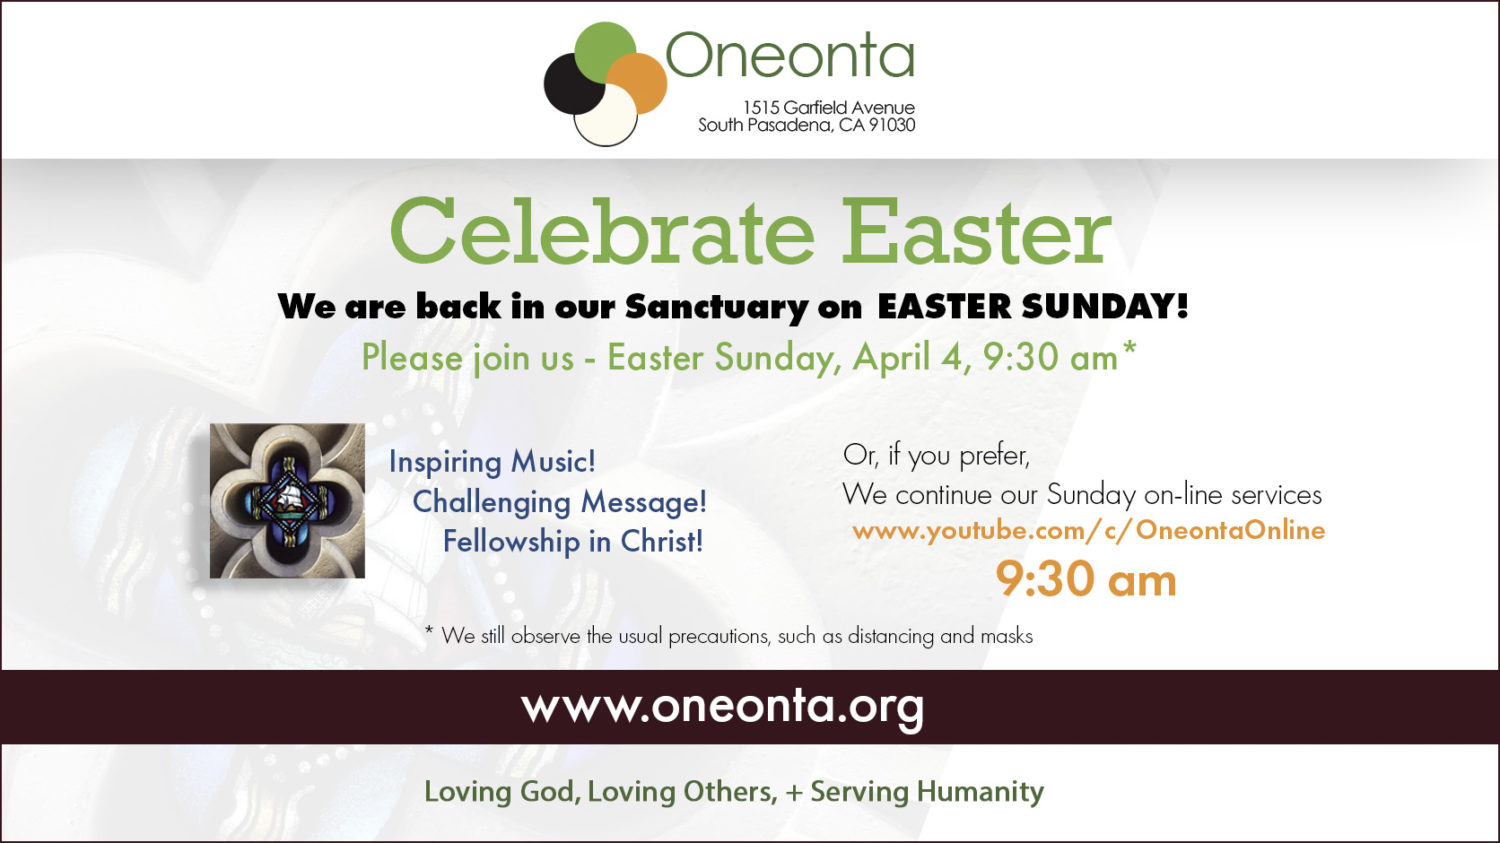 ONEONTA-WEB-AD-Front-Page-Special